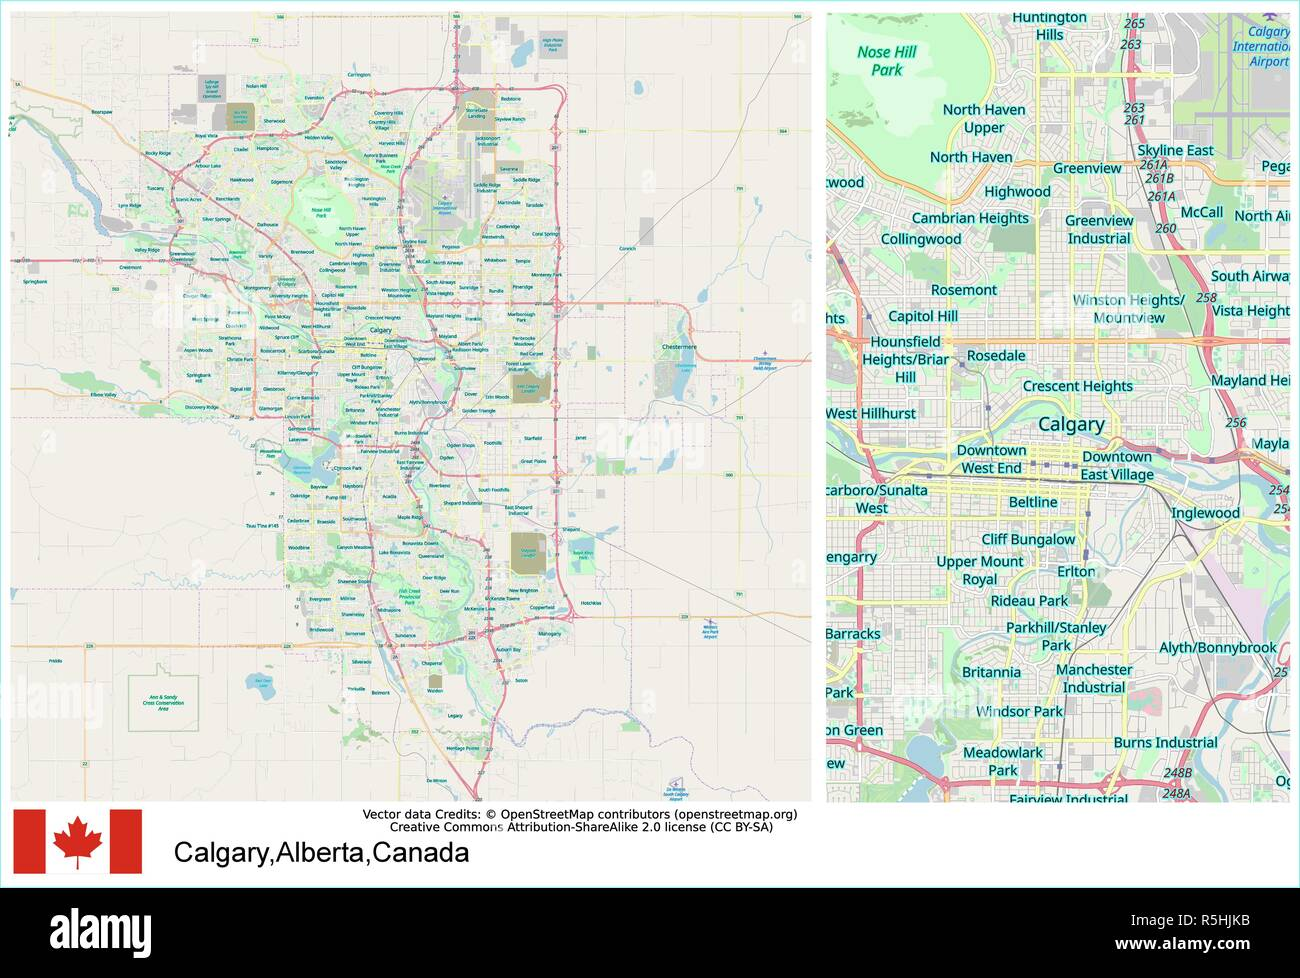 Calgary,Alberta,Canada,North America,Inglewood,Bowness Park,Beltline on